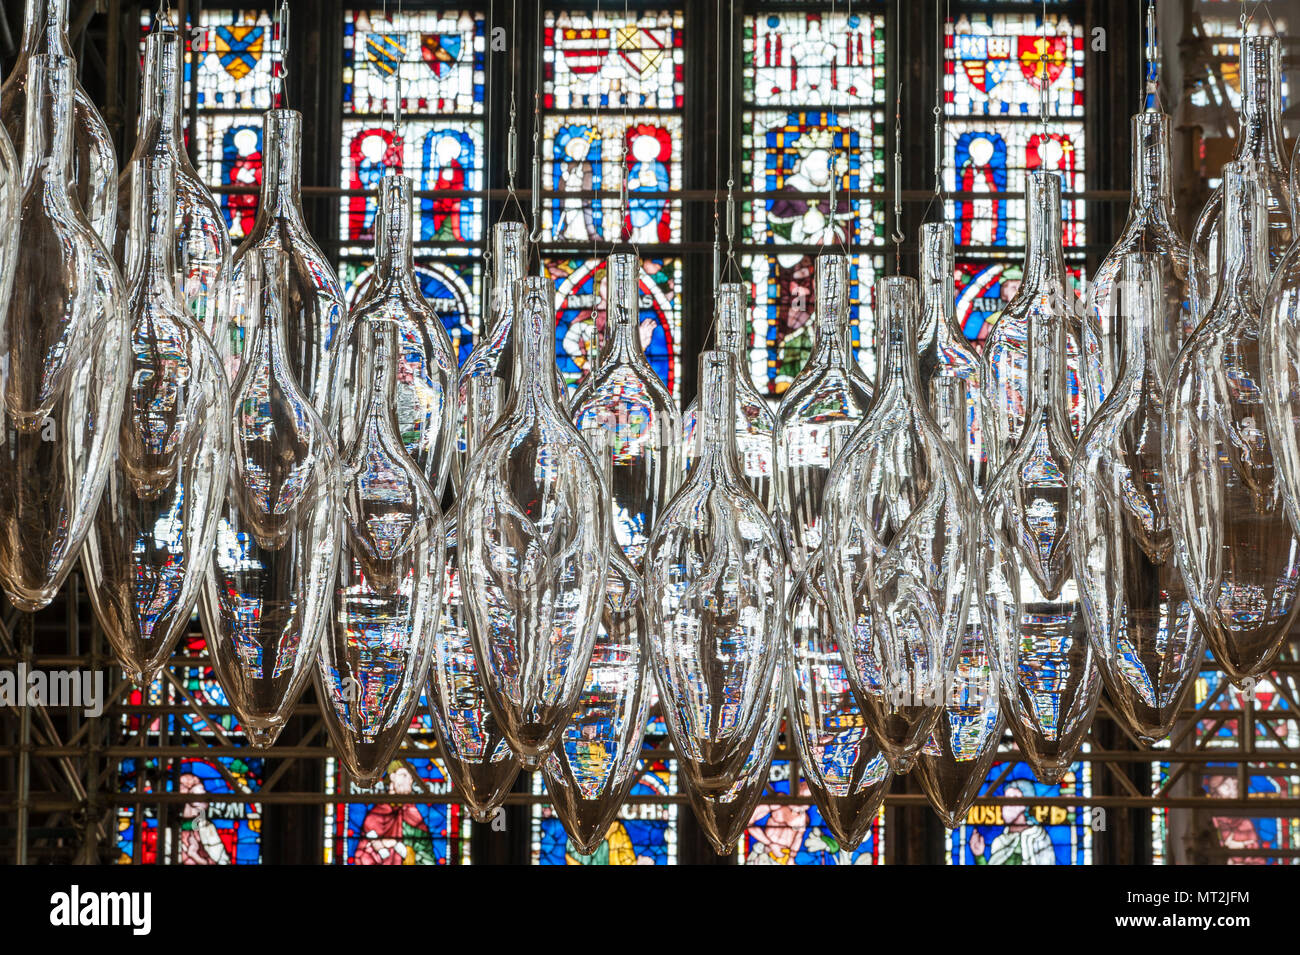 Canterbury, UK. 27th May, 2018. 'Under An Equal Sky', a major art installation is opened in Canterbury Cathedral. It marks the centenary of the end of the First World War. The work is by the artists Monica Guggisberg and Philip Baldwin, who work mostly in glass. This piece, hanging in the nave of the cathedral, is called 'Boat of Remembrance' and refers to, among other things, the refugee crisis in the Mediterranean. - Stock Image